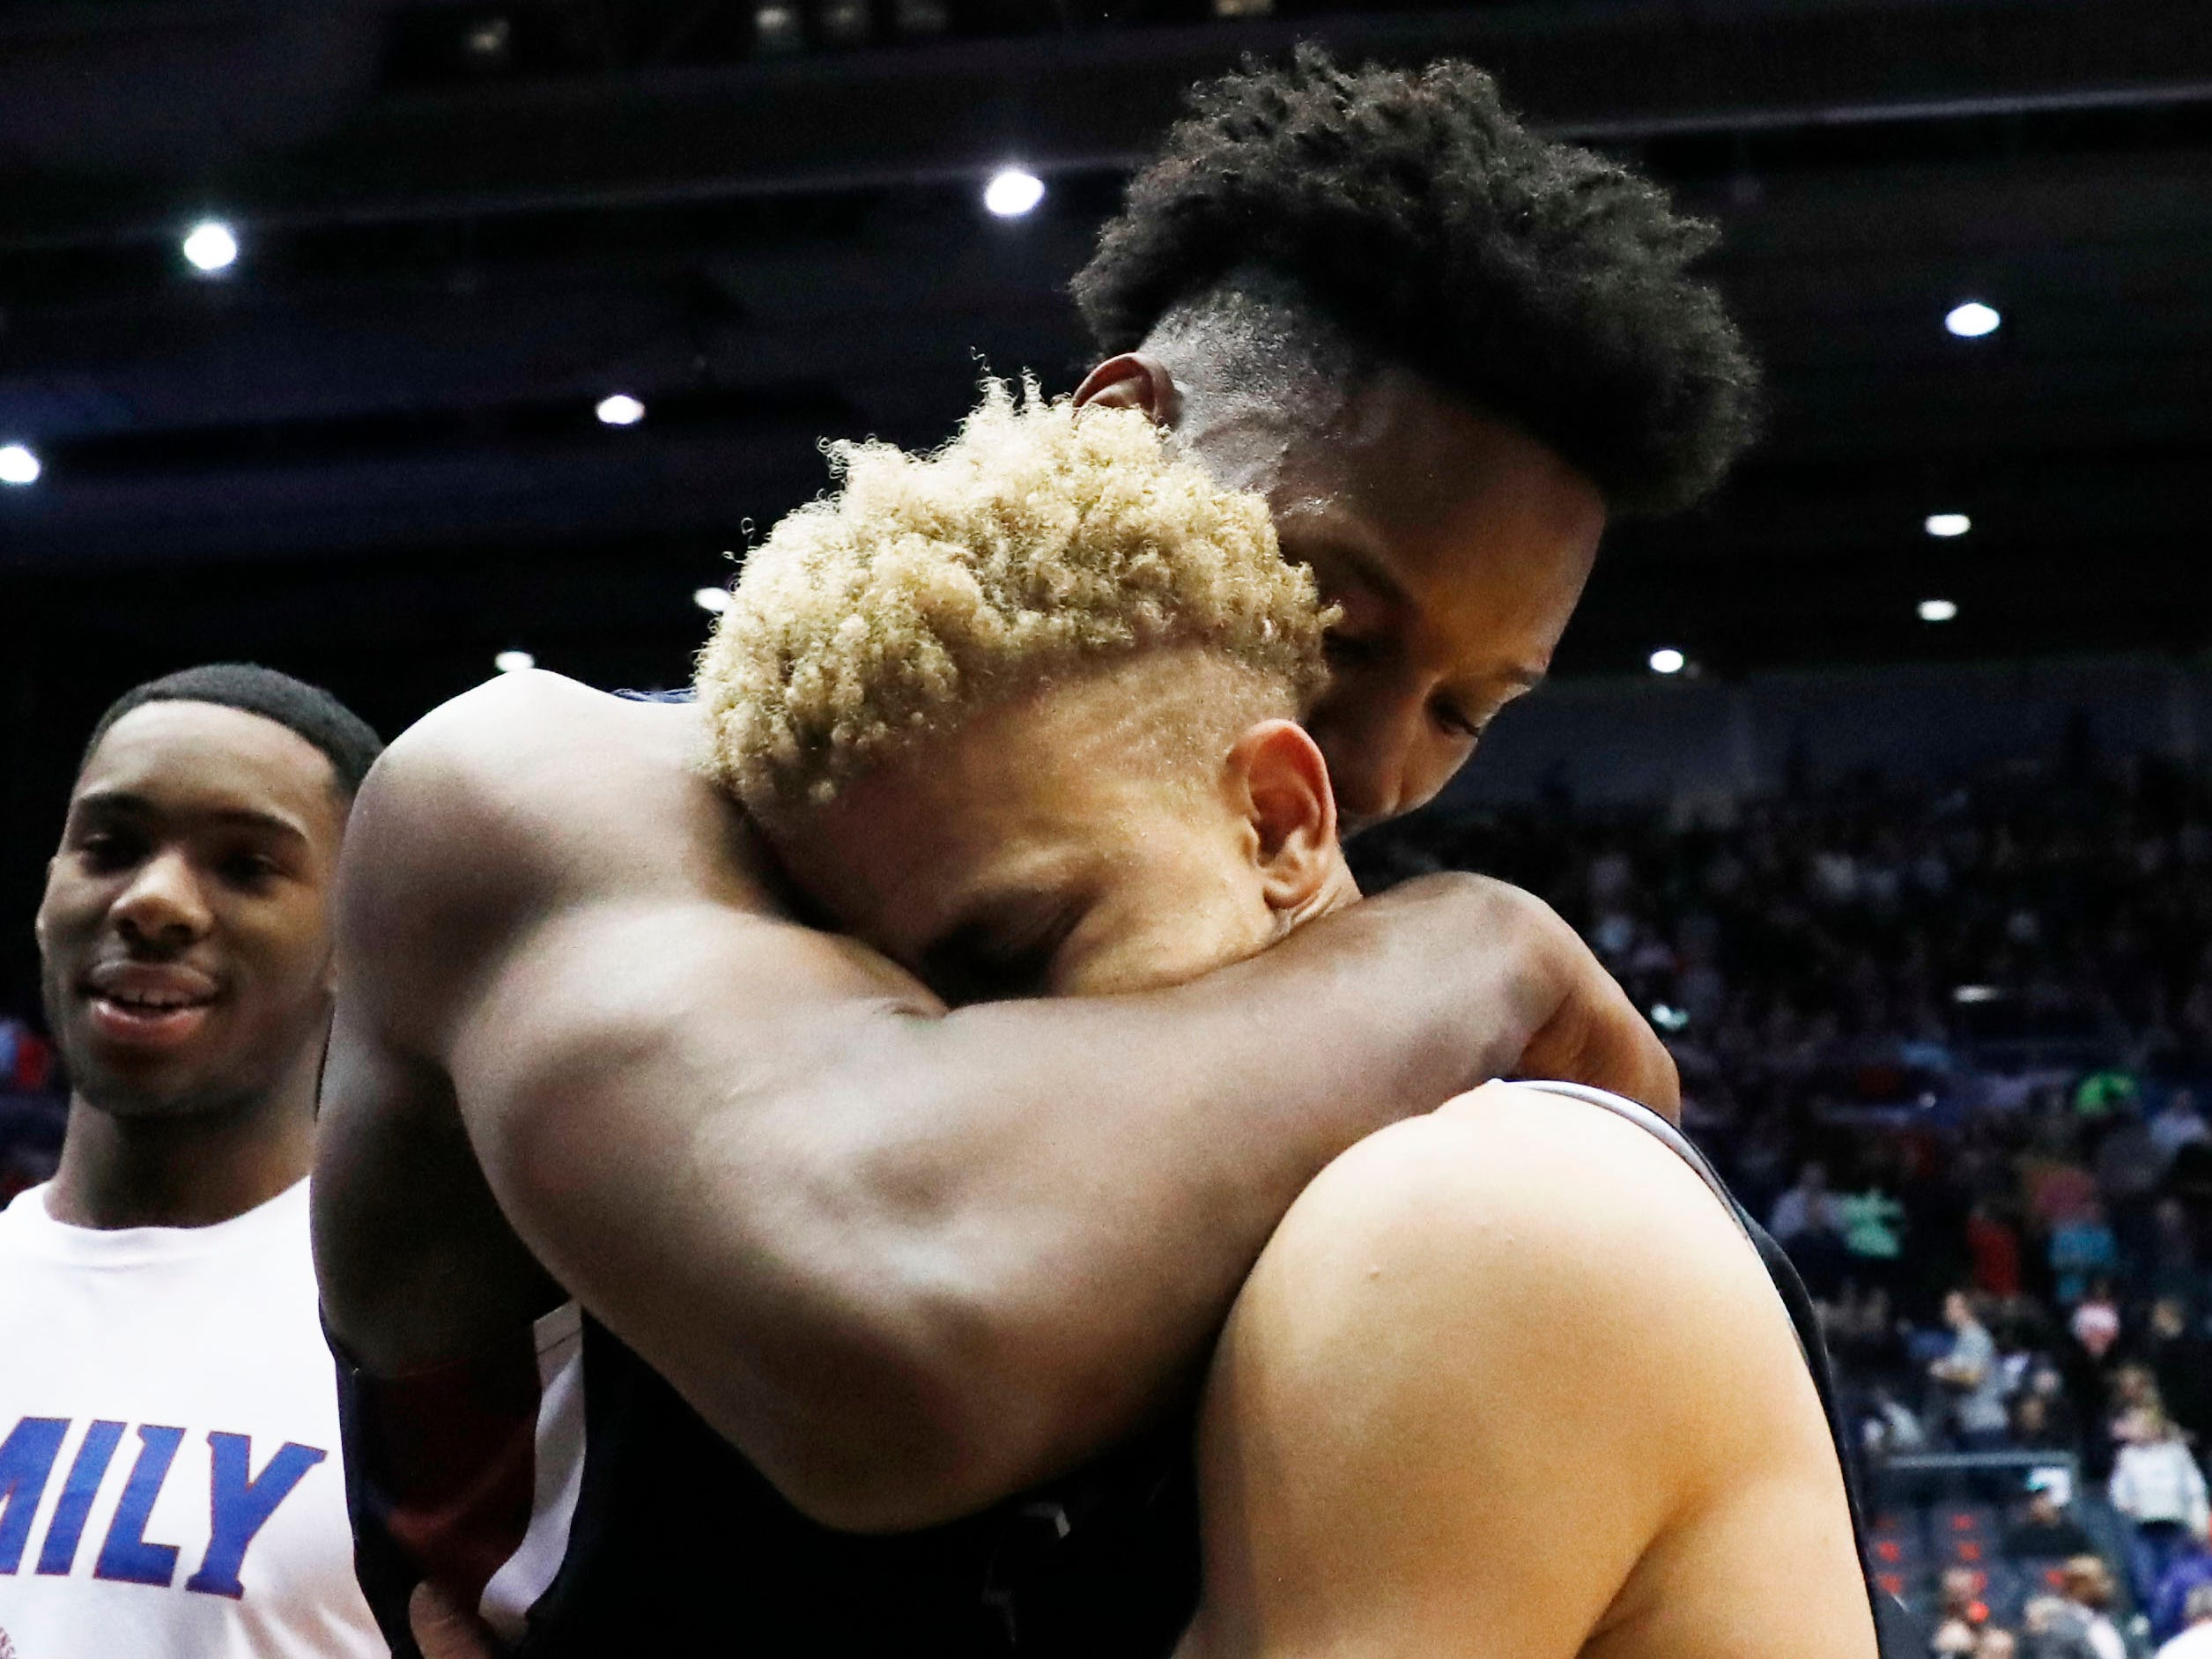 Fairleigh Dickinson Knights forward Mike Holloway Jr., left, and guard Jahlil Jenkins hug after defeating the Prairie View A&M Panthers in the First Four.